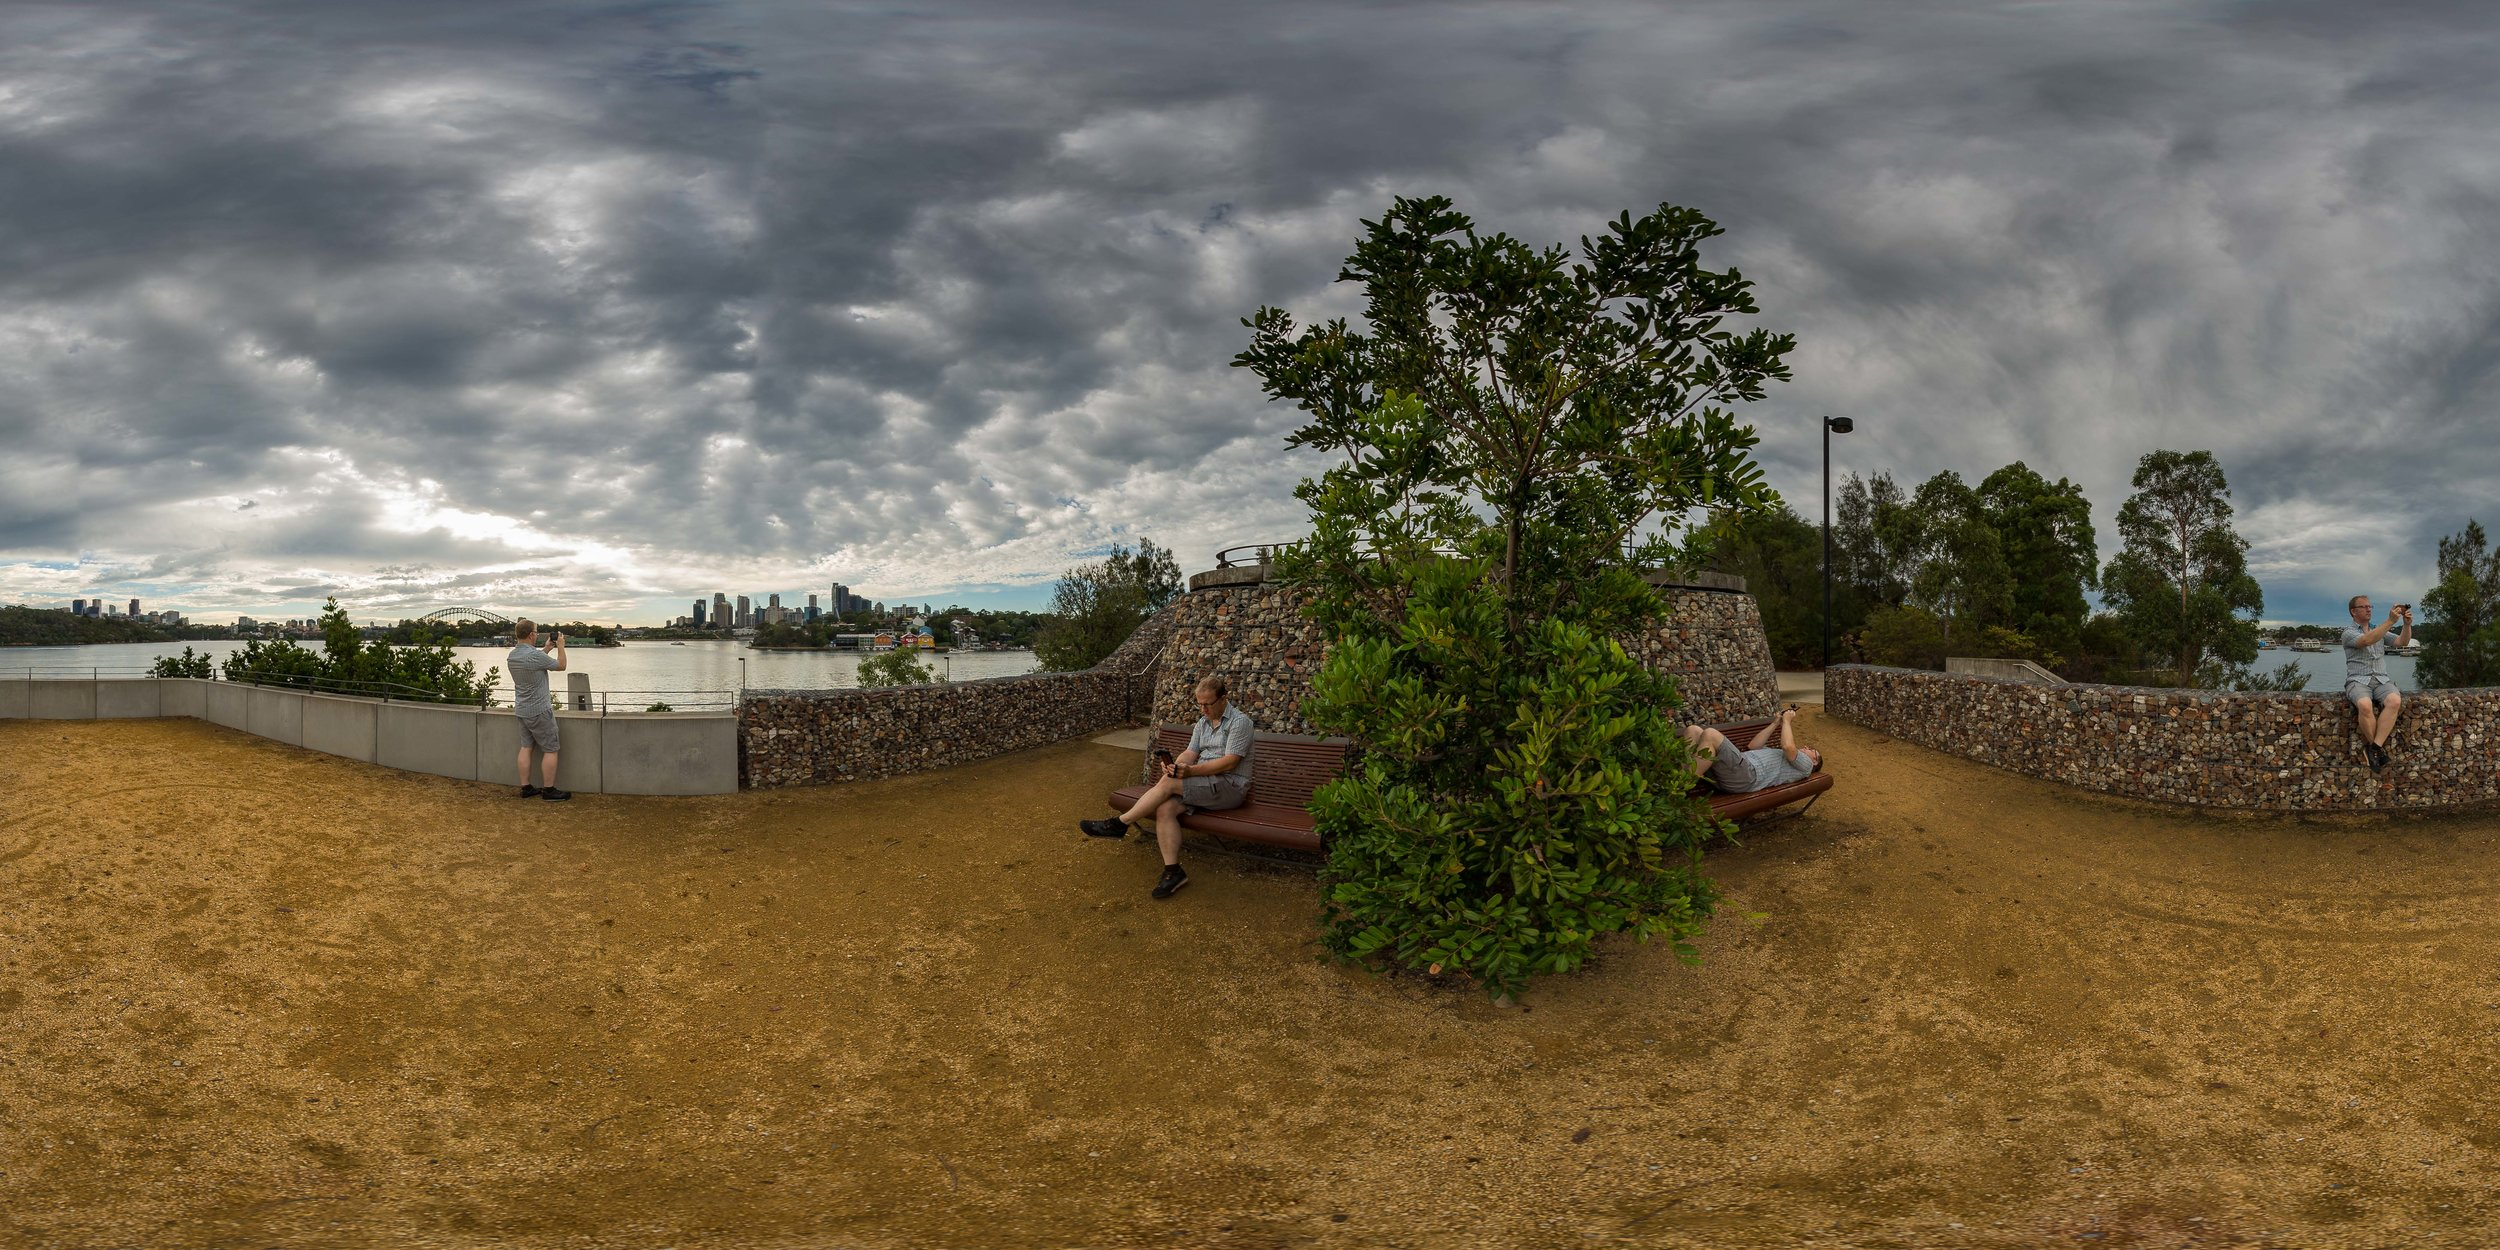 Ballast Point Equirectangular - 4 images in one